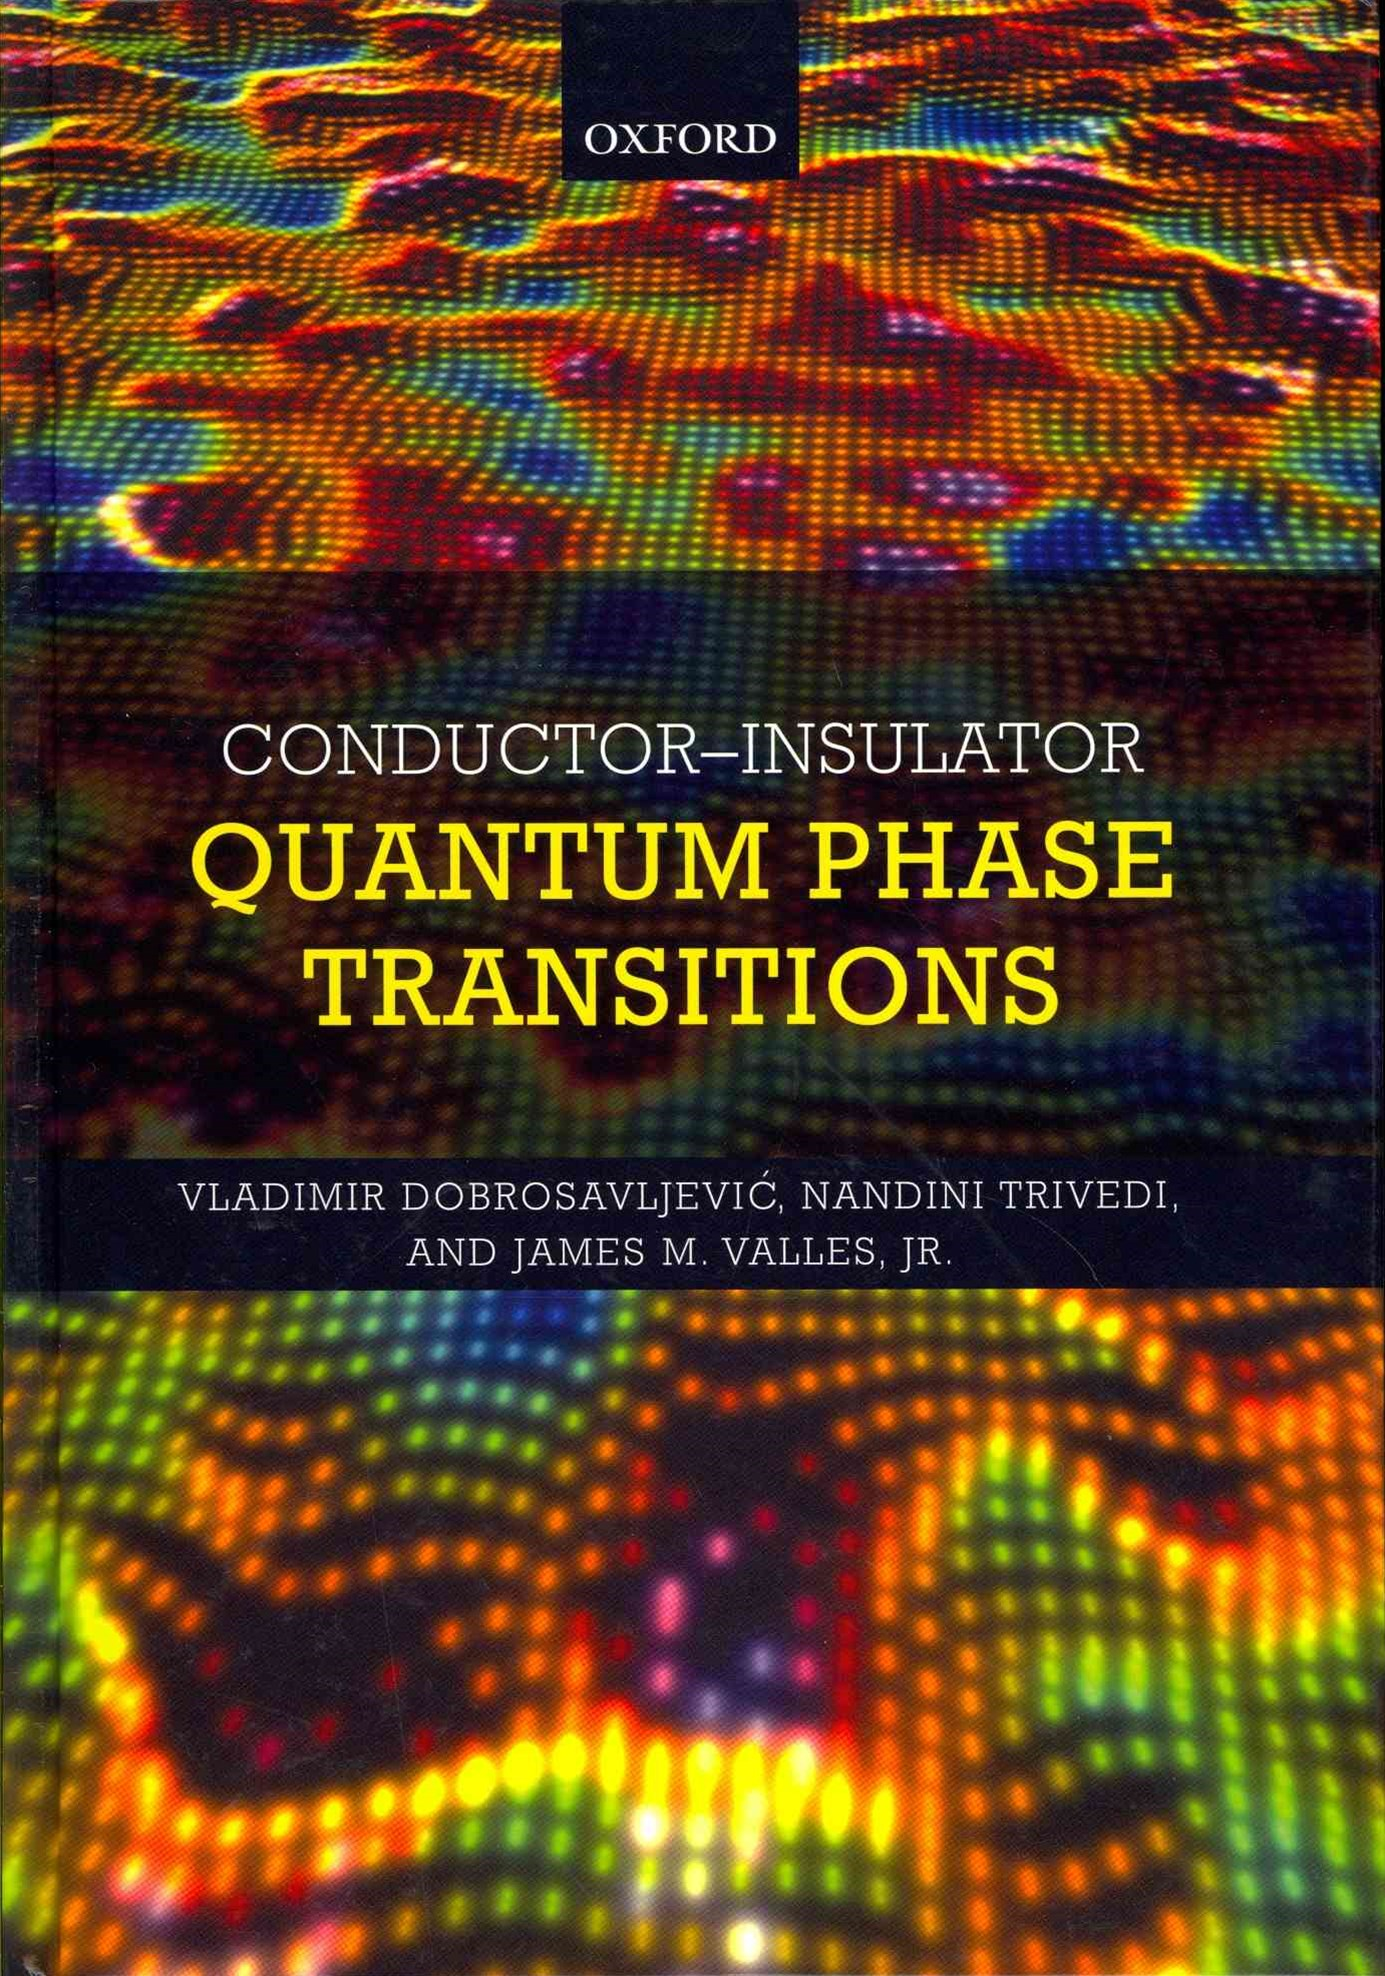 Conductor Insulator Quantum Phase Transitions